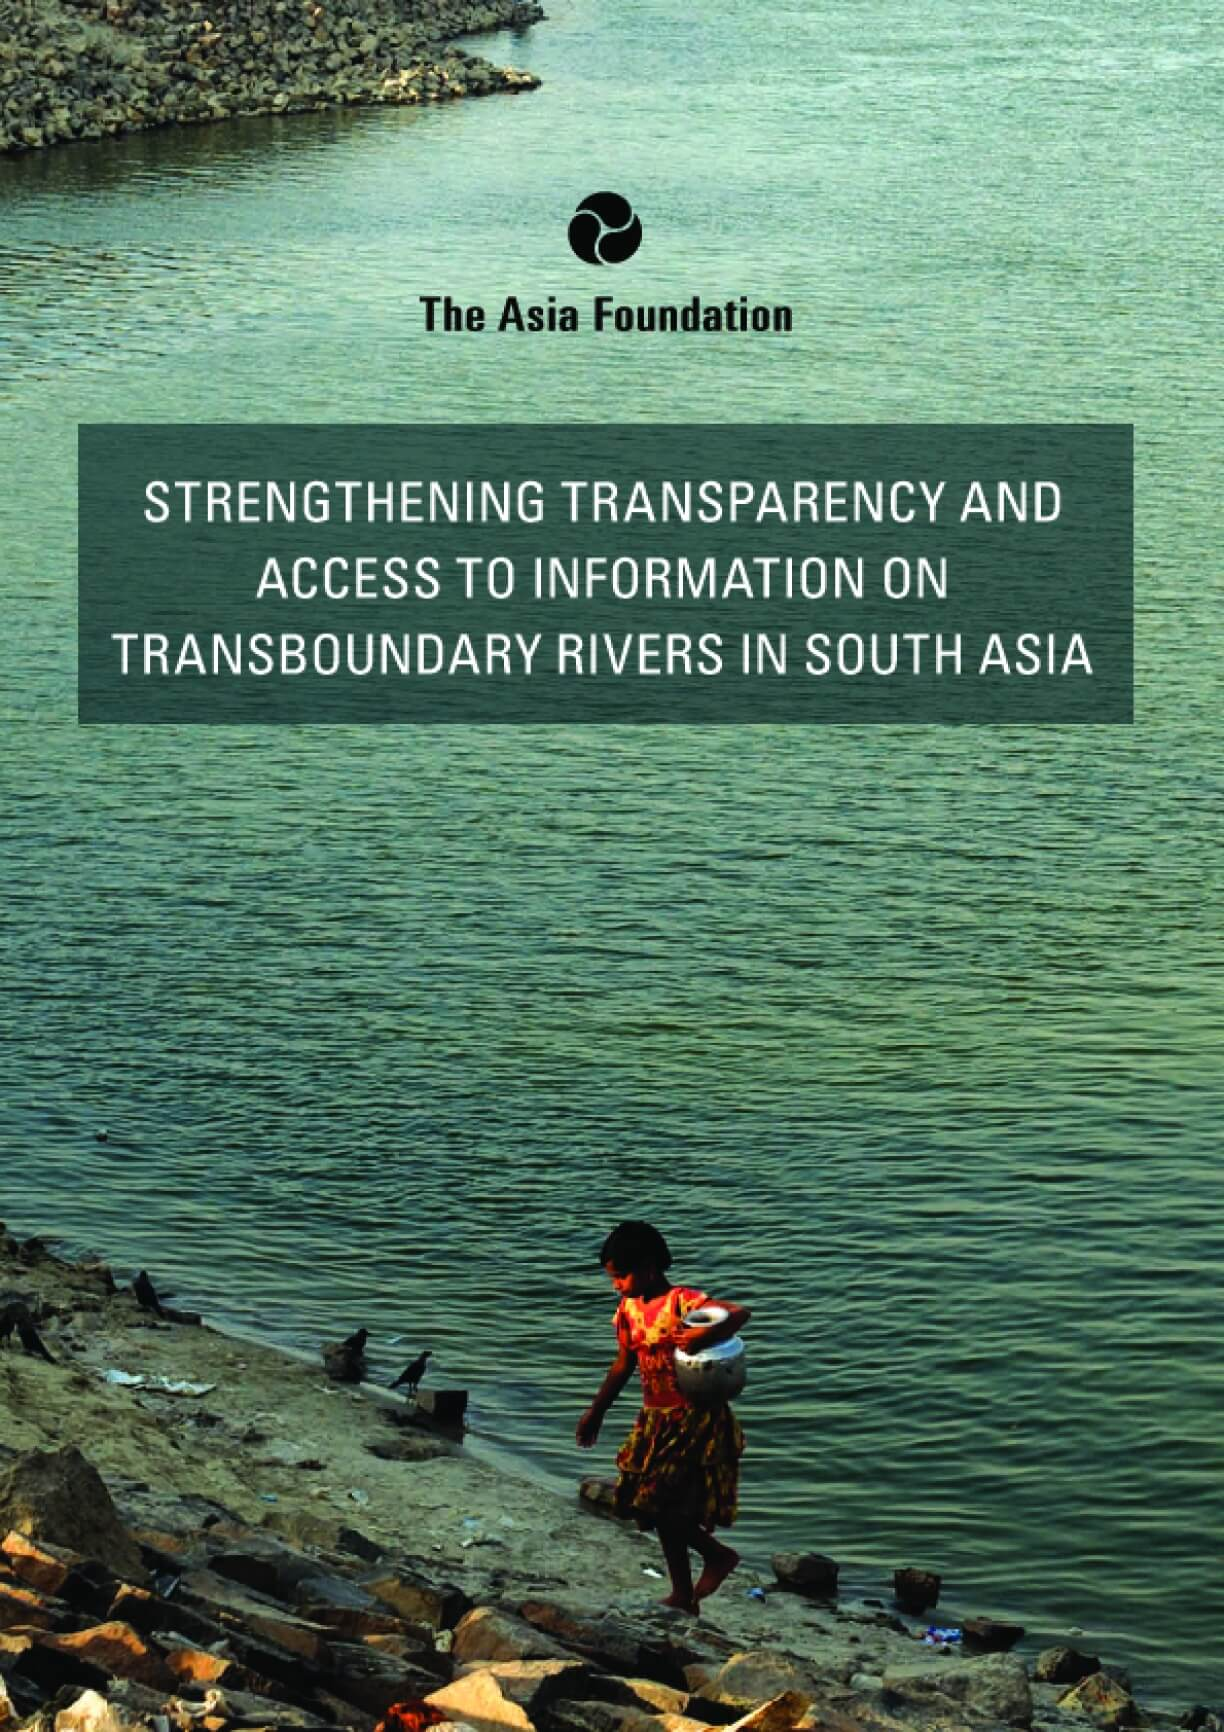 Strengthening Transparency and Access to Information on Transboundary Rivers in South Asia